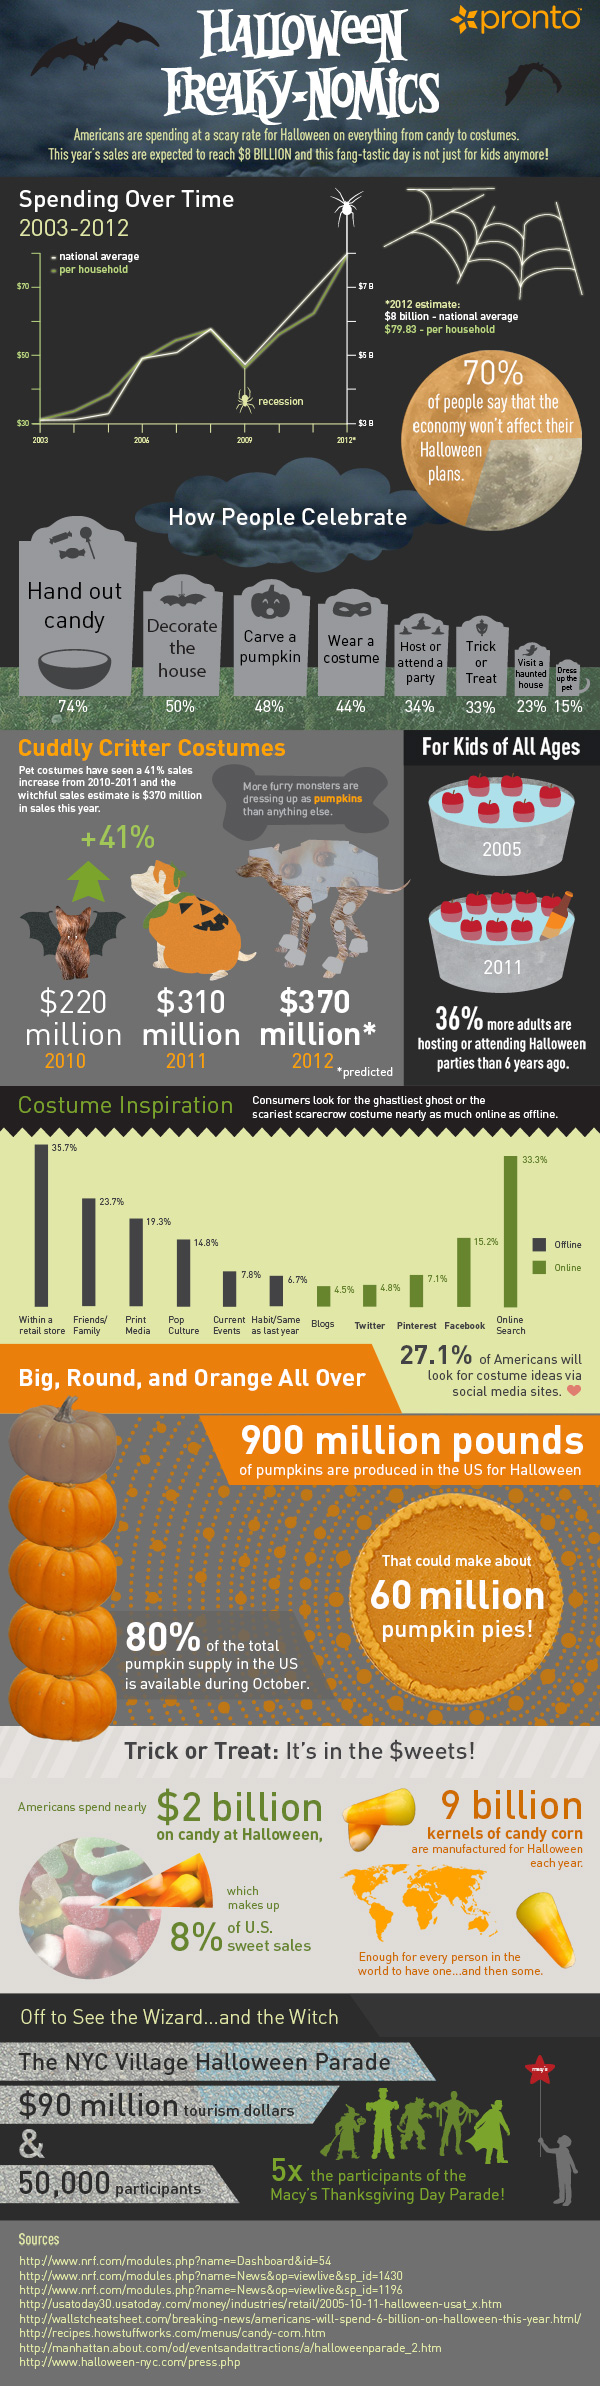 Halloween Economics-Infographic